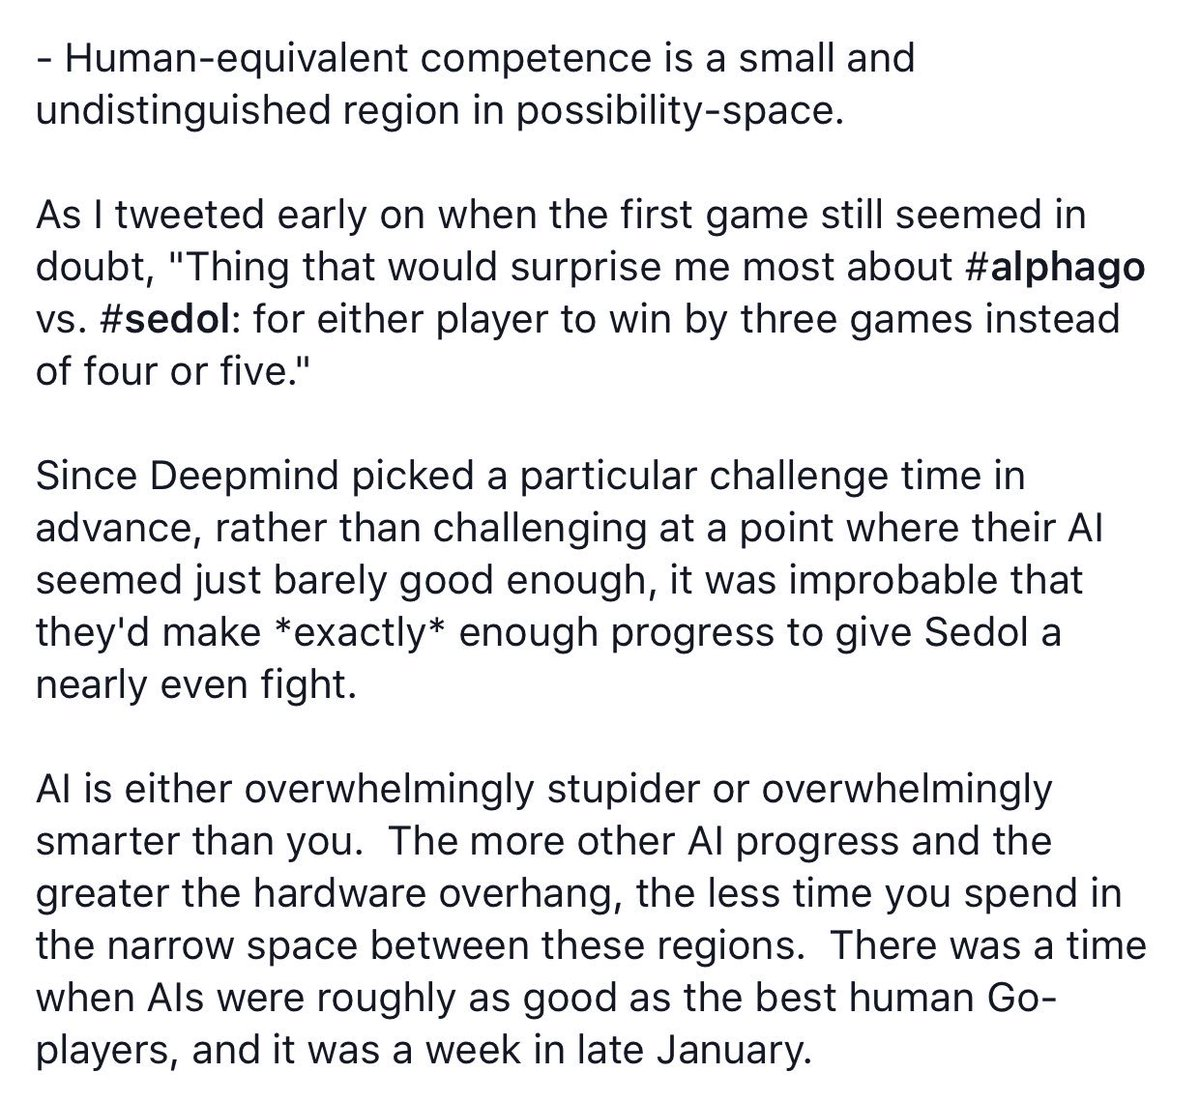 Simply fantastic post about AlphaGo and what it shows about AI risk from @ESYudkowsky. https://t.co/LJOG15nuHb https://t.co/5fg5A7bHrj